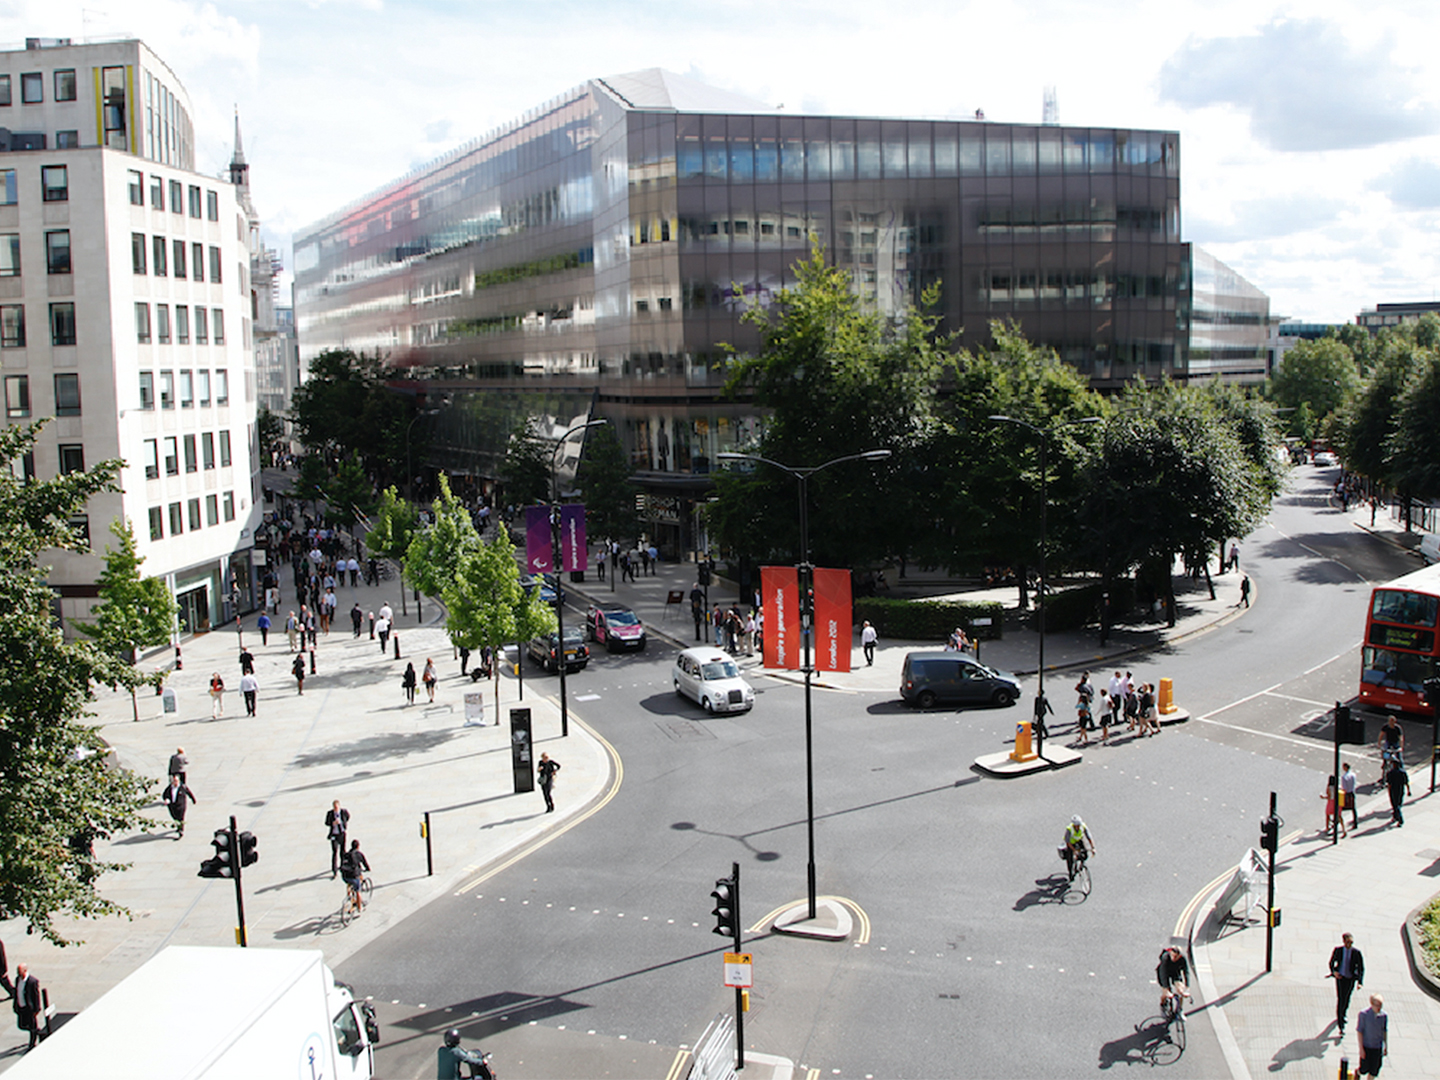 Shortlist announced for competition to revolutionise the traditional Police Box in the Square Mile